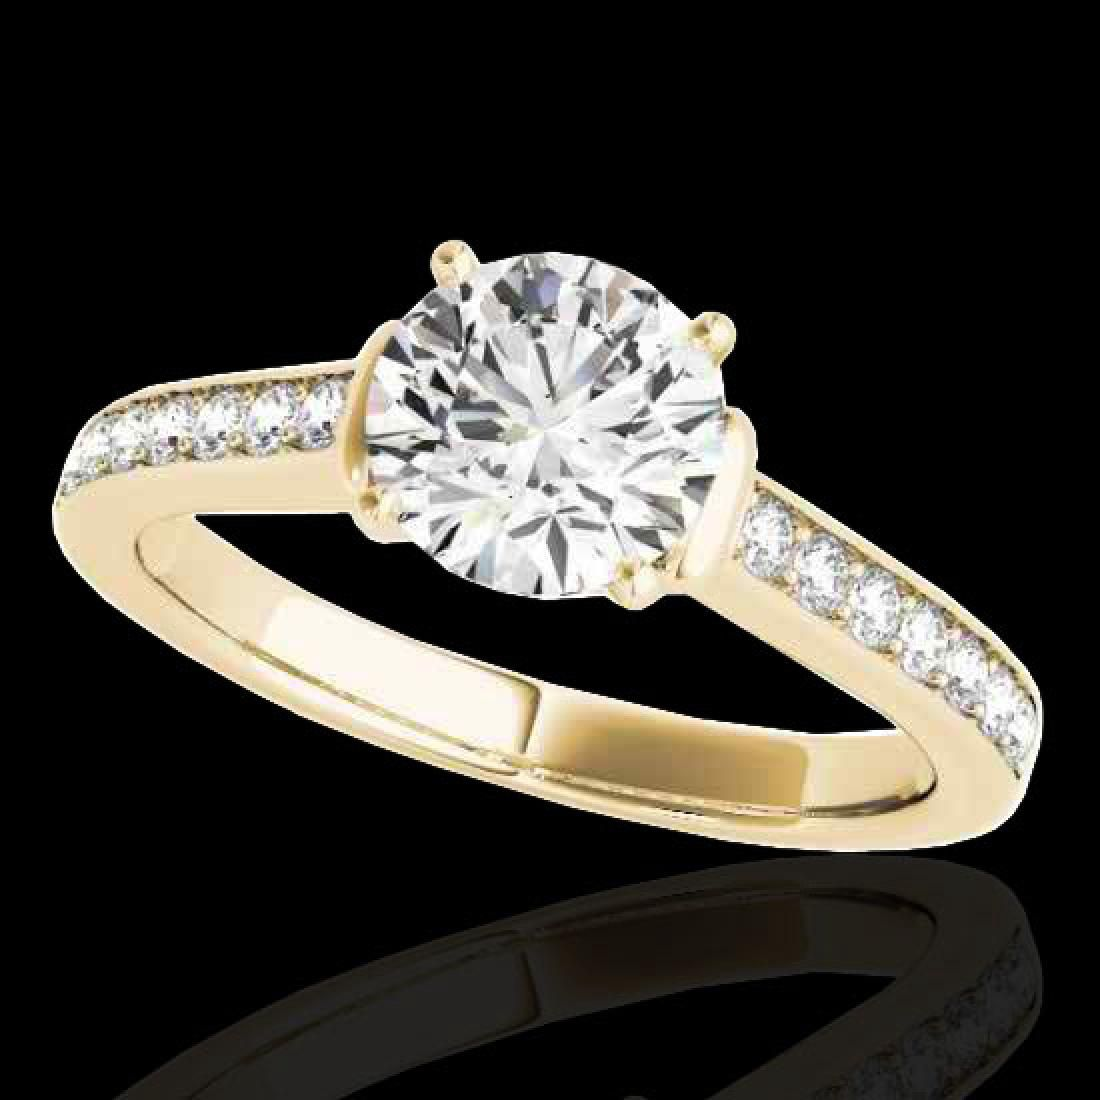 150 CTW HSII Certified Diamond Solitaire Ring 10K